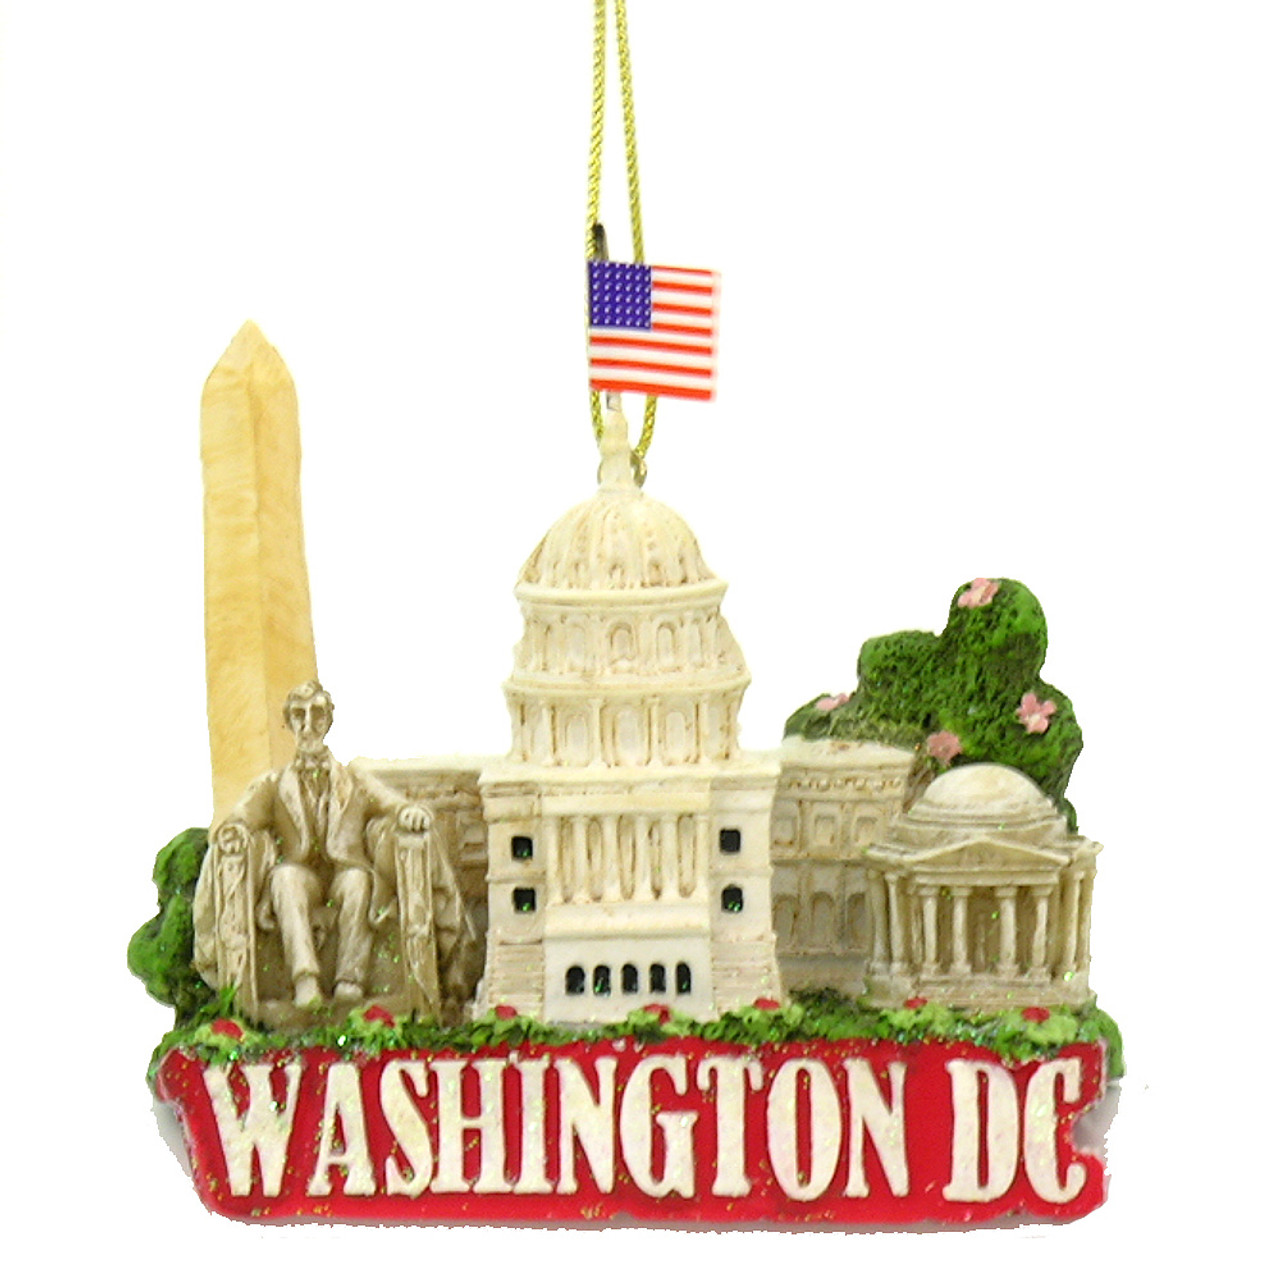 Washington DC Christmas Ornament with Landmarks